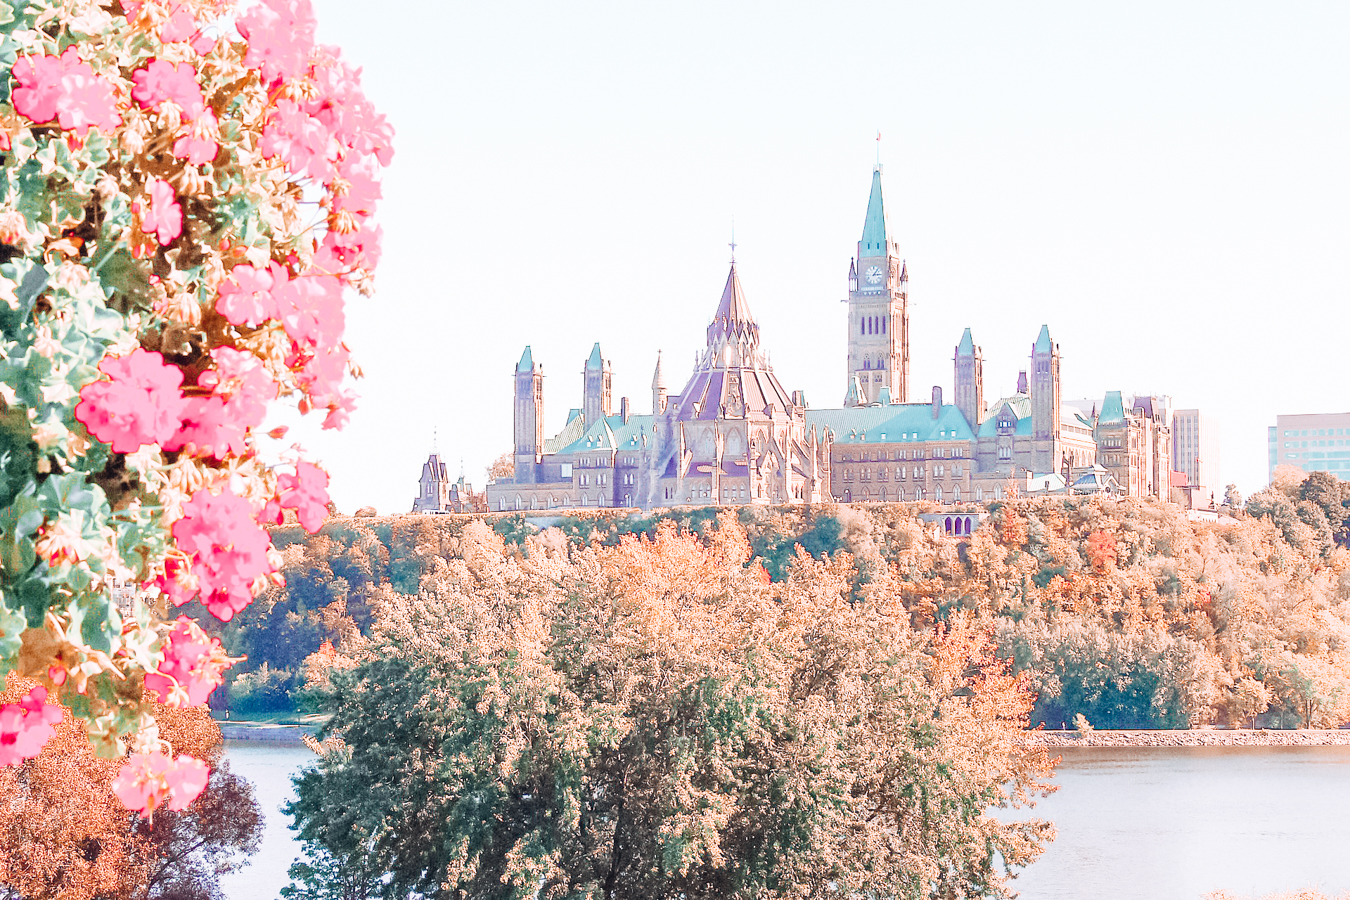 Flowers and the Parliament of Canada